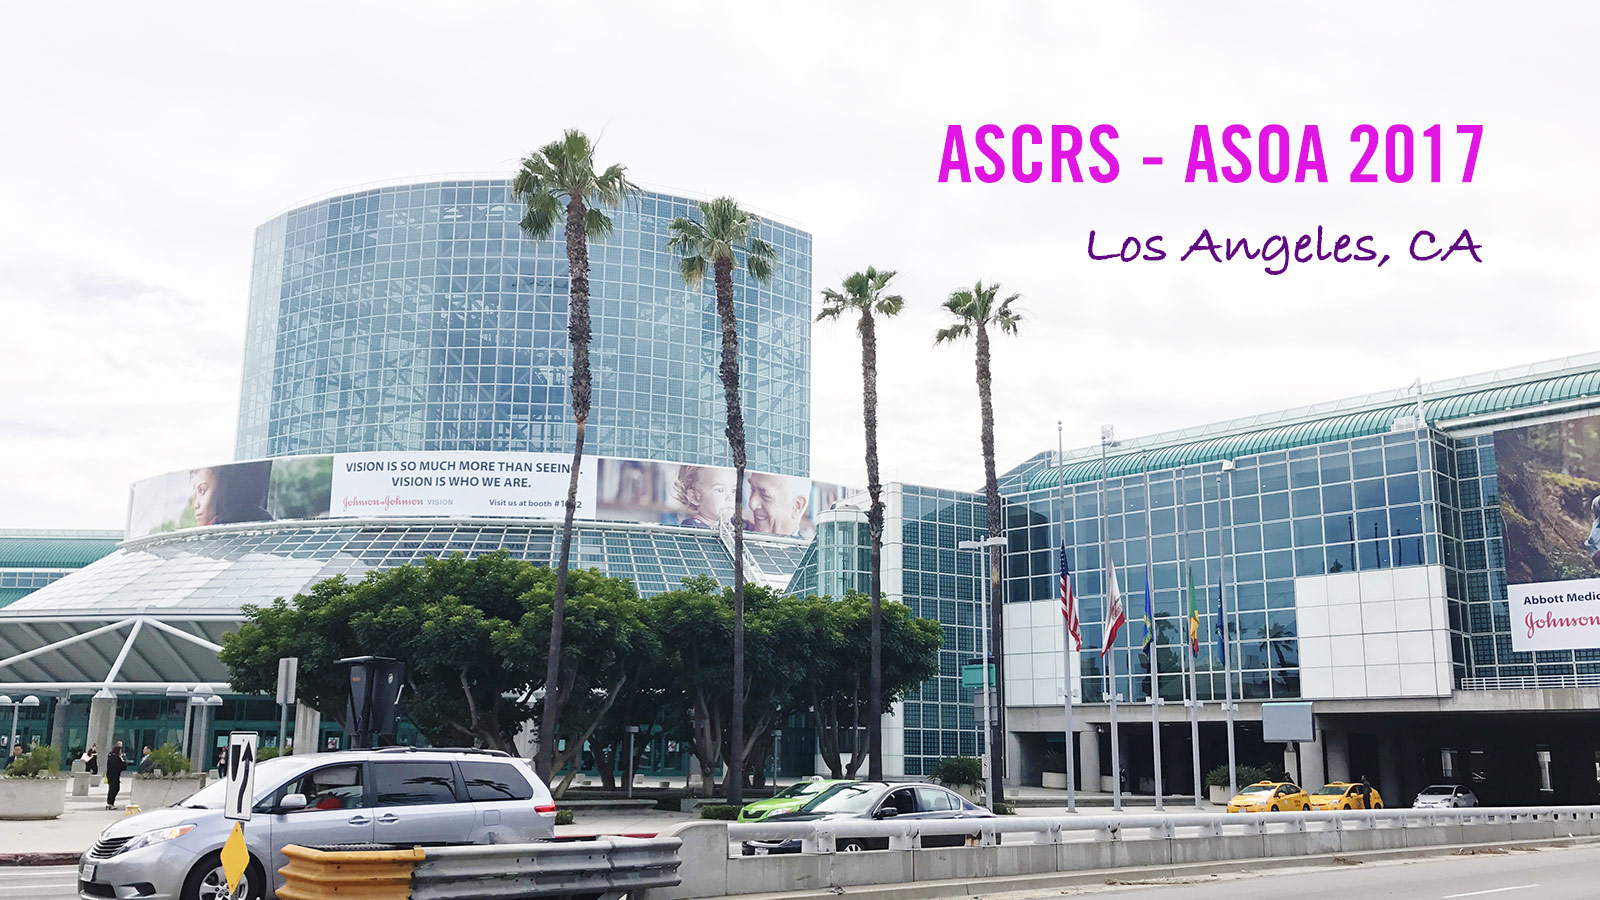 ASCRS-ASOA-2017-Ophthalmology-LA-Expo-Conference-Annual-Meeting-Refractive-Expo